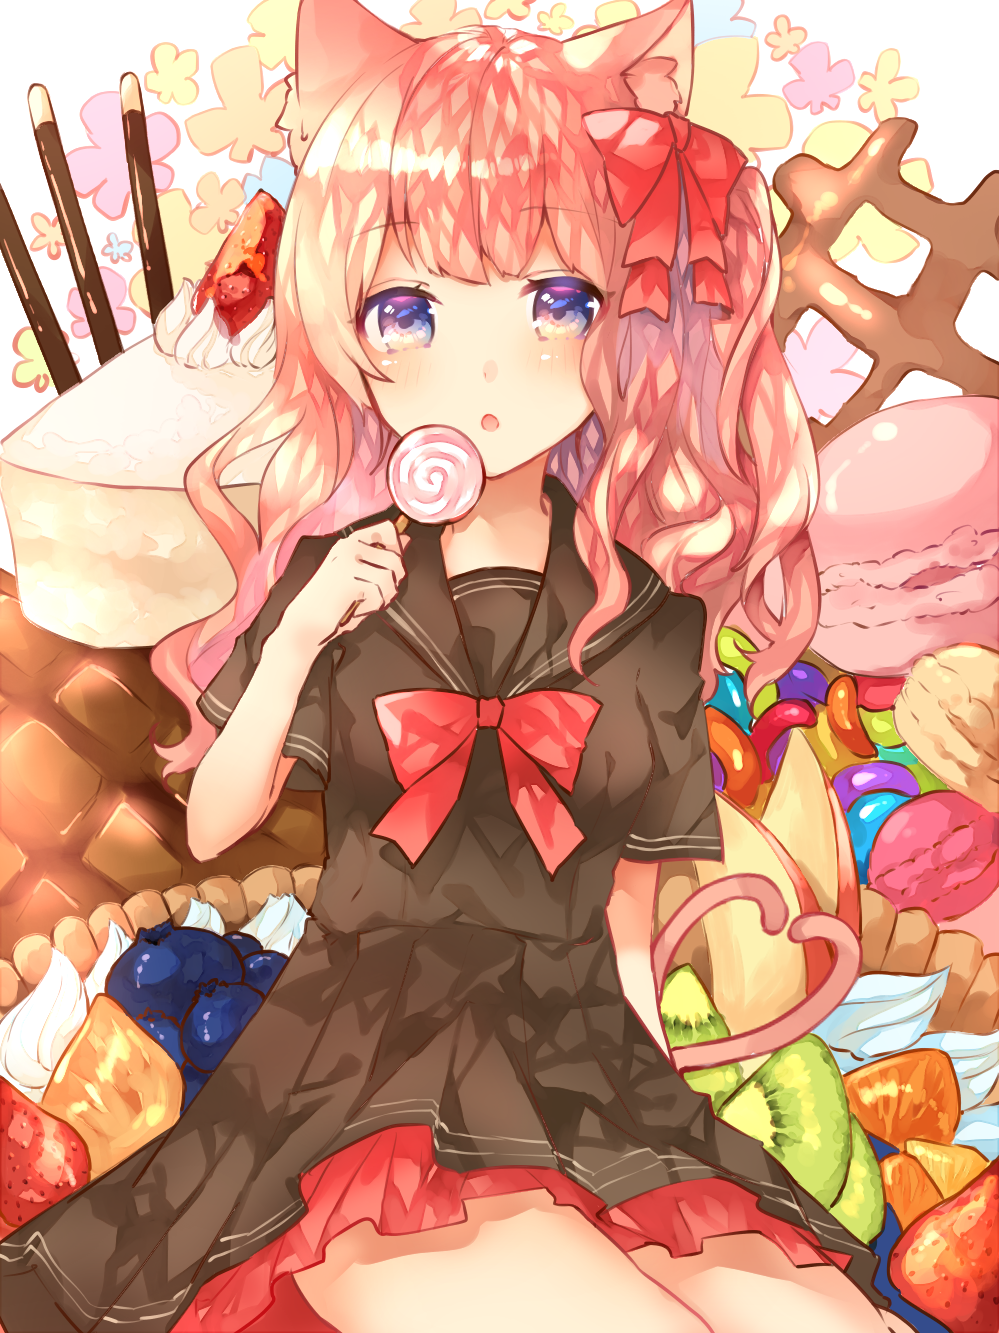 1girl :o animal_ears apple_slice arm_behind_back arm_up black_serafuku blue_eyes blueberry bow bread candy cat_ears cat_tail cheesecake floral_background food fruit hair_ribbon heart heart_tail highres jelly_bean kiwi_slice lollipop long_hair looking_at_viewer macaron melon_bread multiple_tails orange orange_slice original oversized_object petticoat pie pink_hair pocky red_bow red_neckwear ribbon school_uniform serafuku short_sleeves side_ponytail sitting solo strawberry sweetroad swirl_lollipop tail white_background